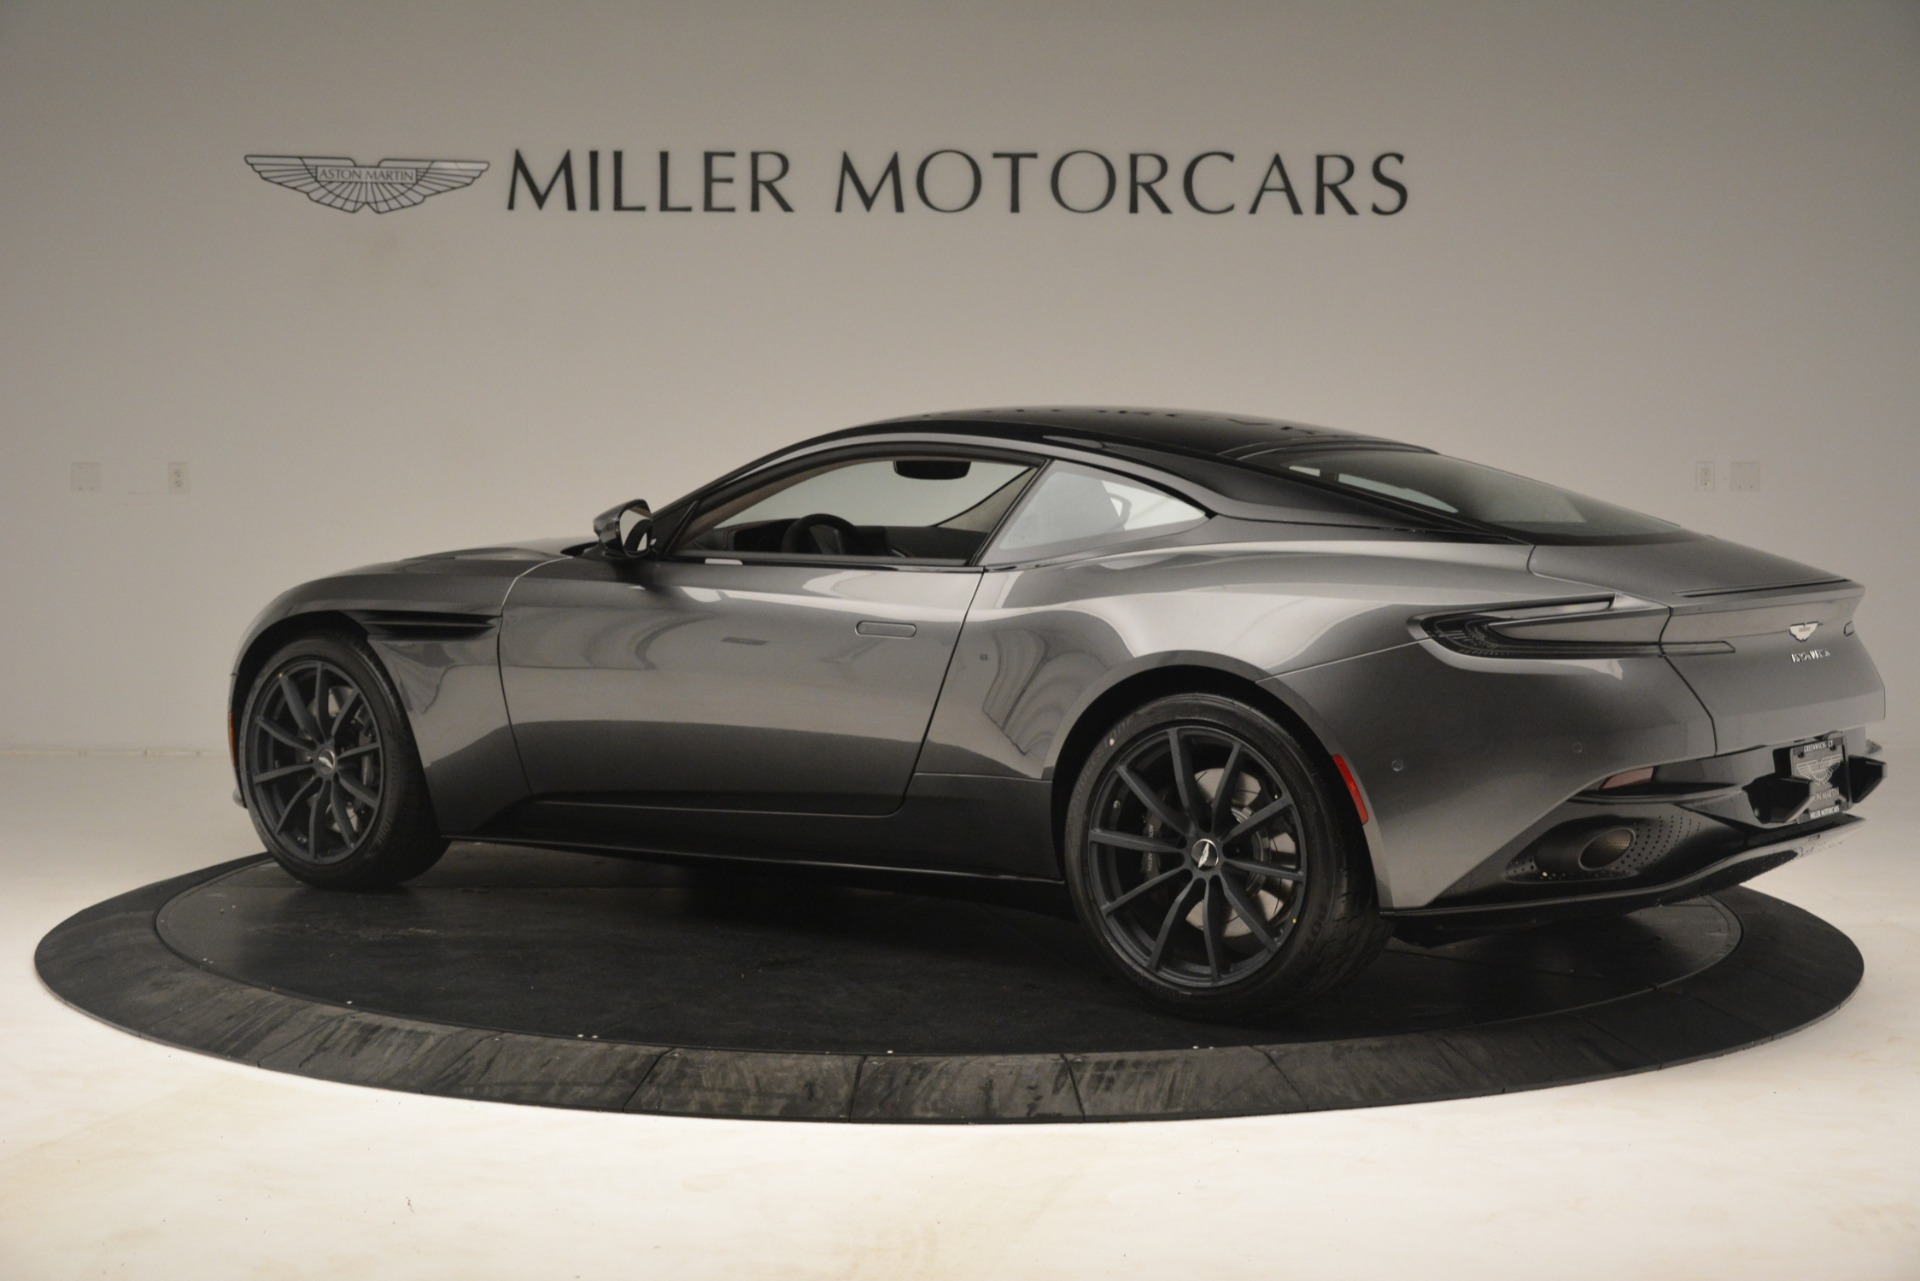 New 2019 Aston Martin DB11 V12 AMR Coupe For Sale In Westport, CT 3123_p4